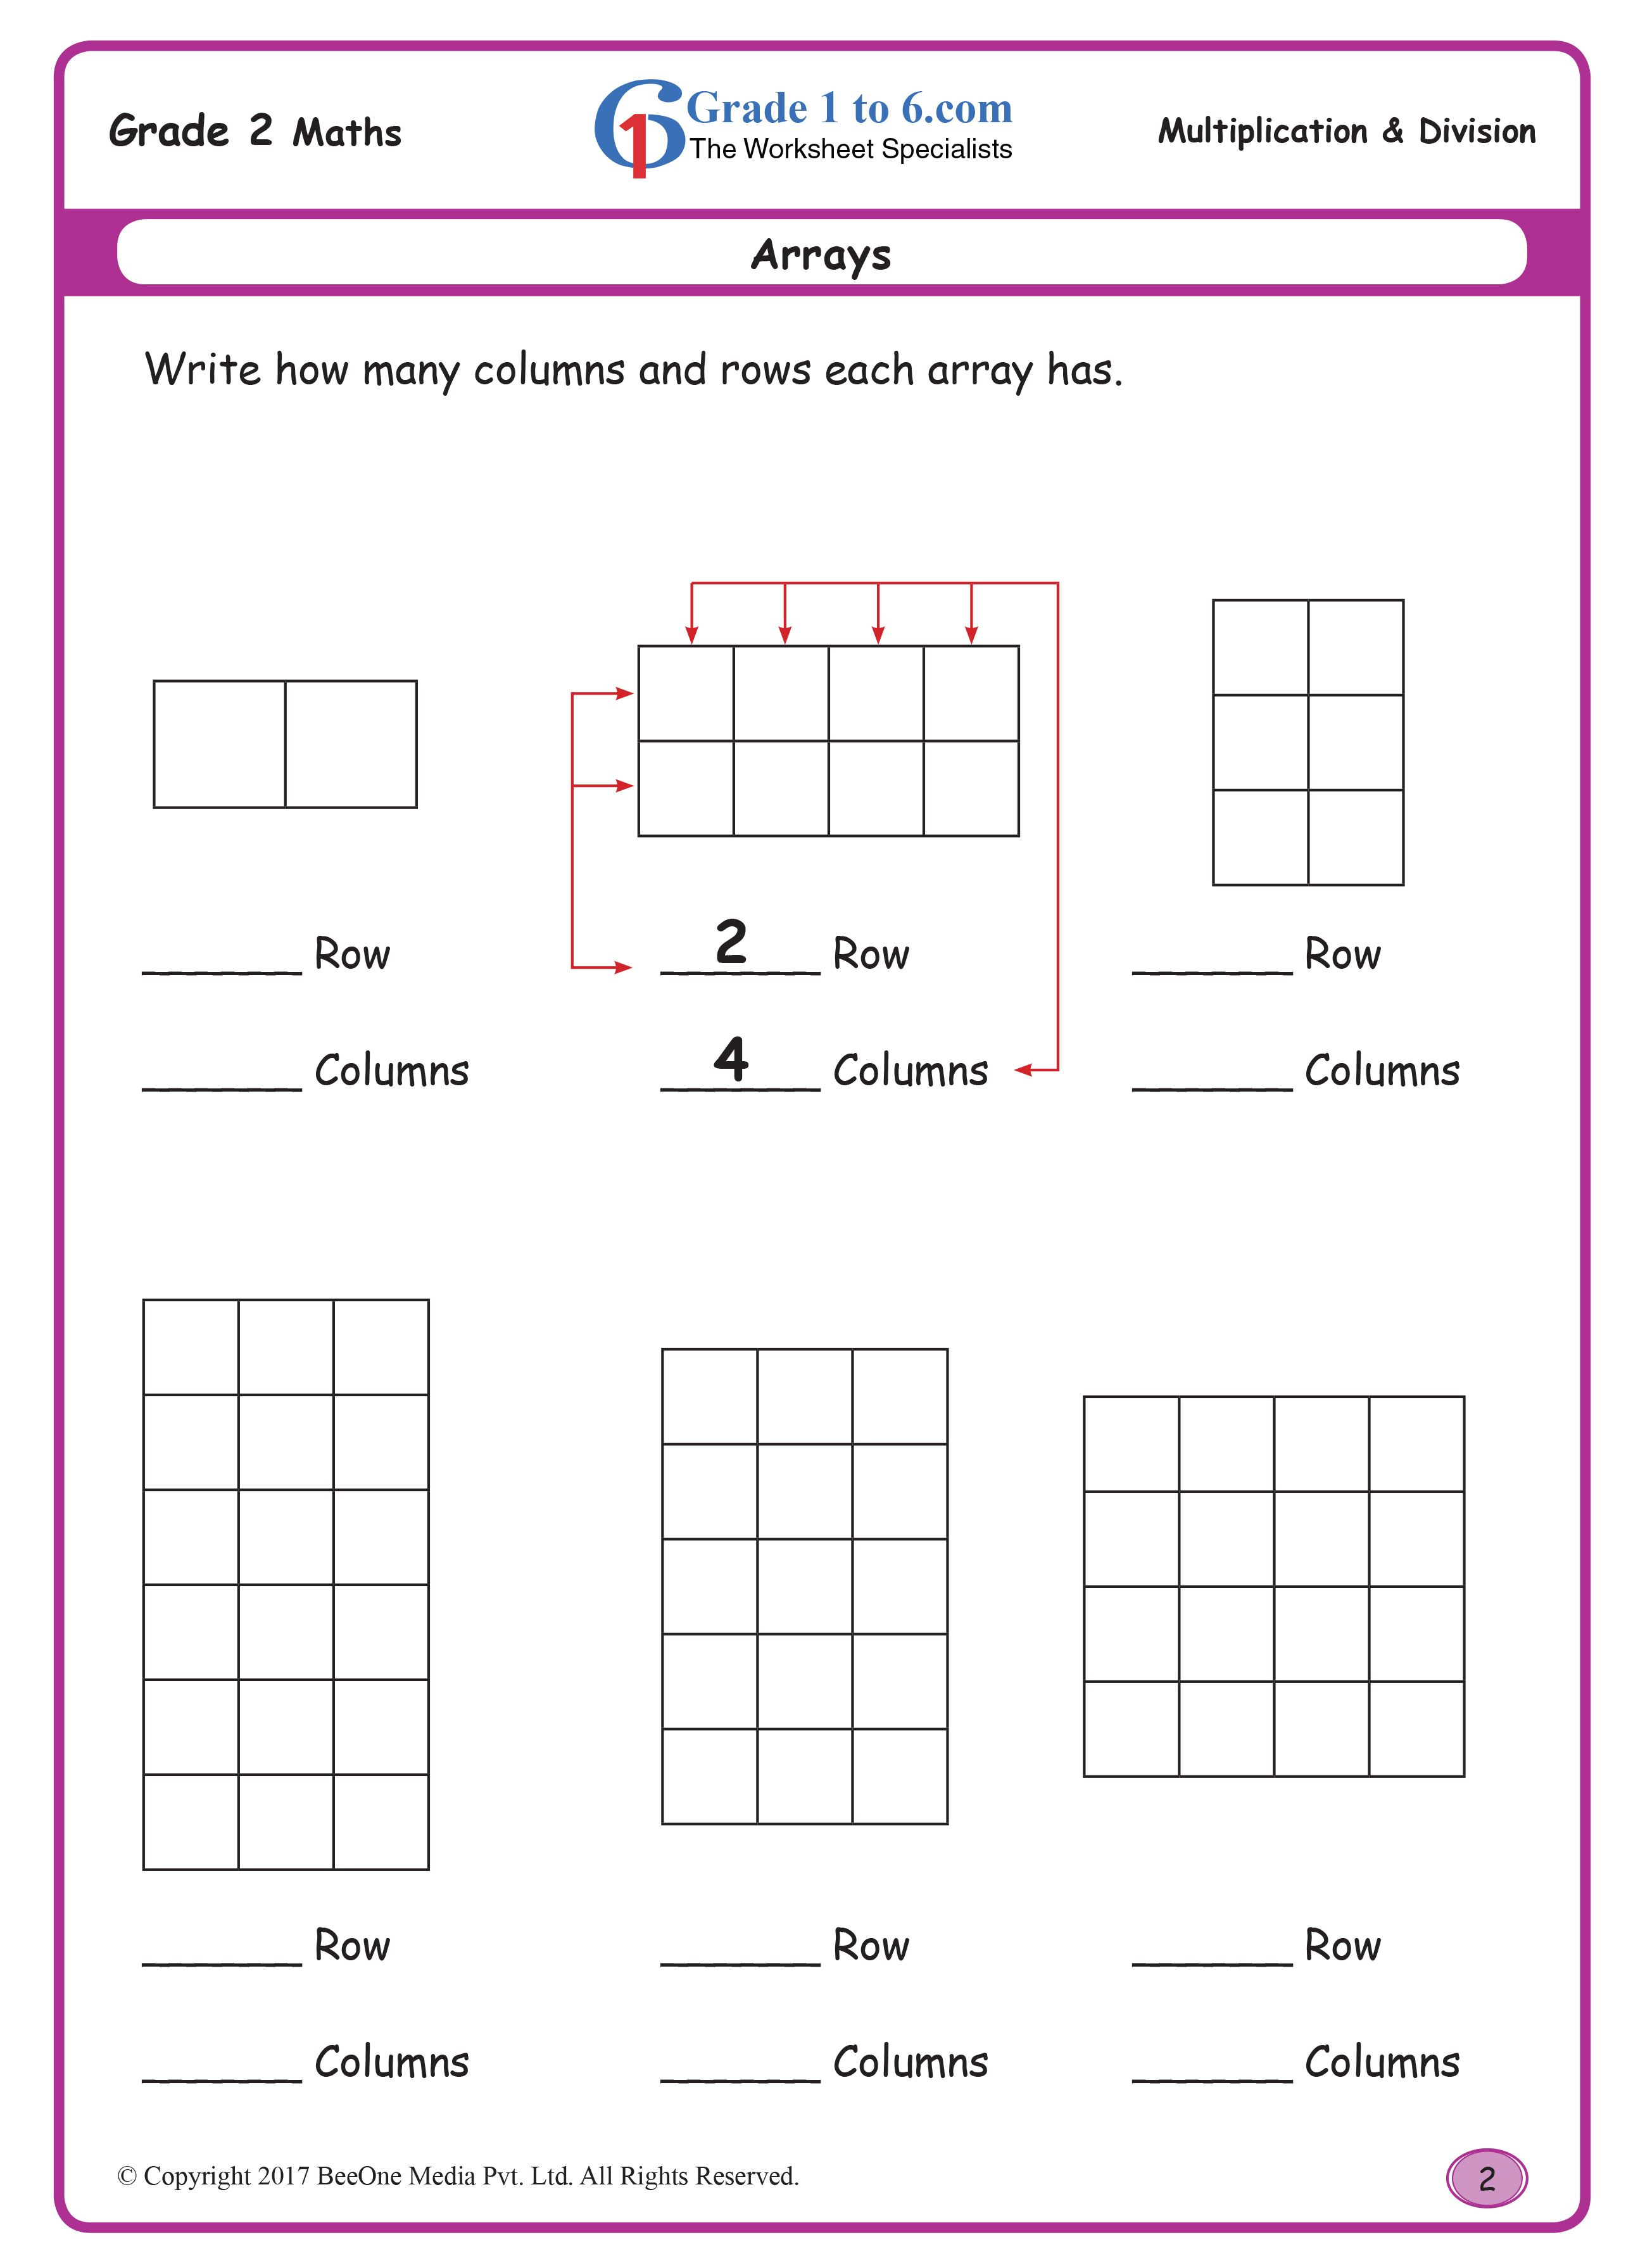 Arrays Buy The Entire E Workbook Of 300 Plus Pages For